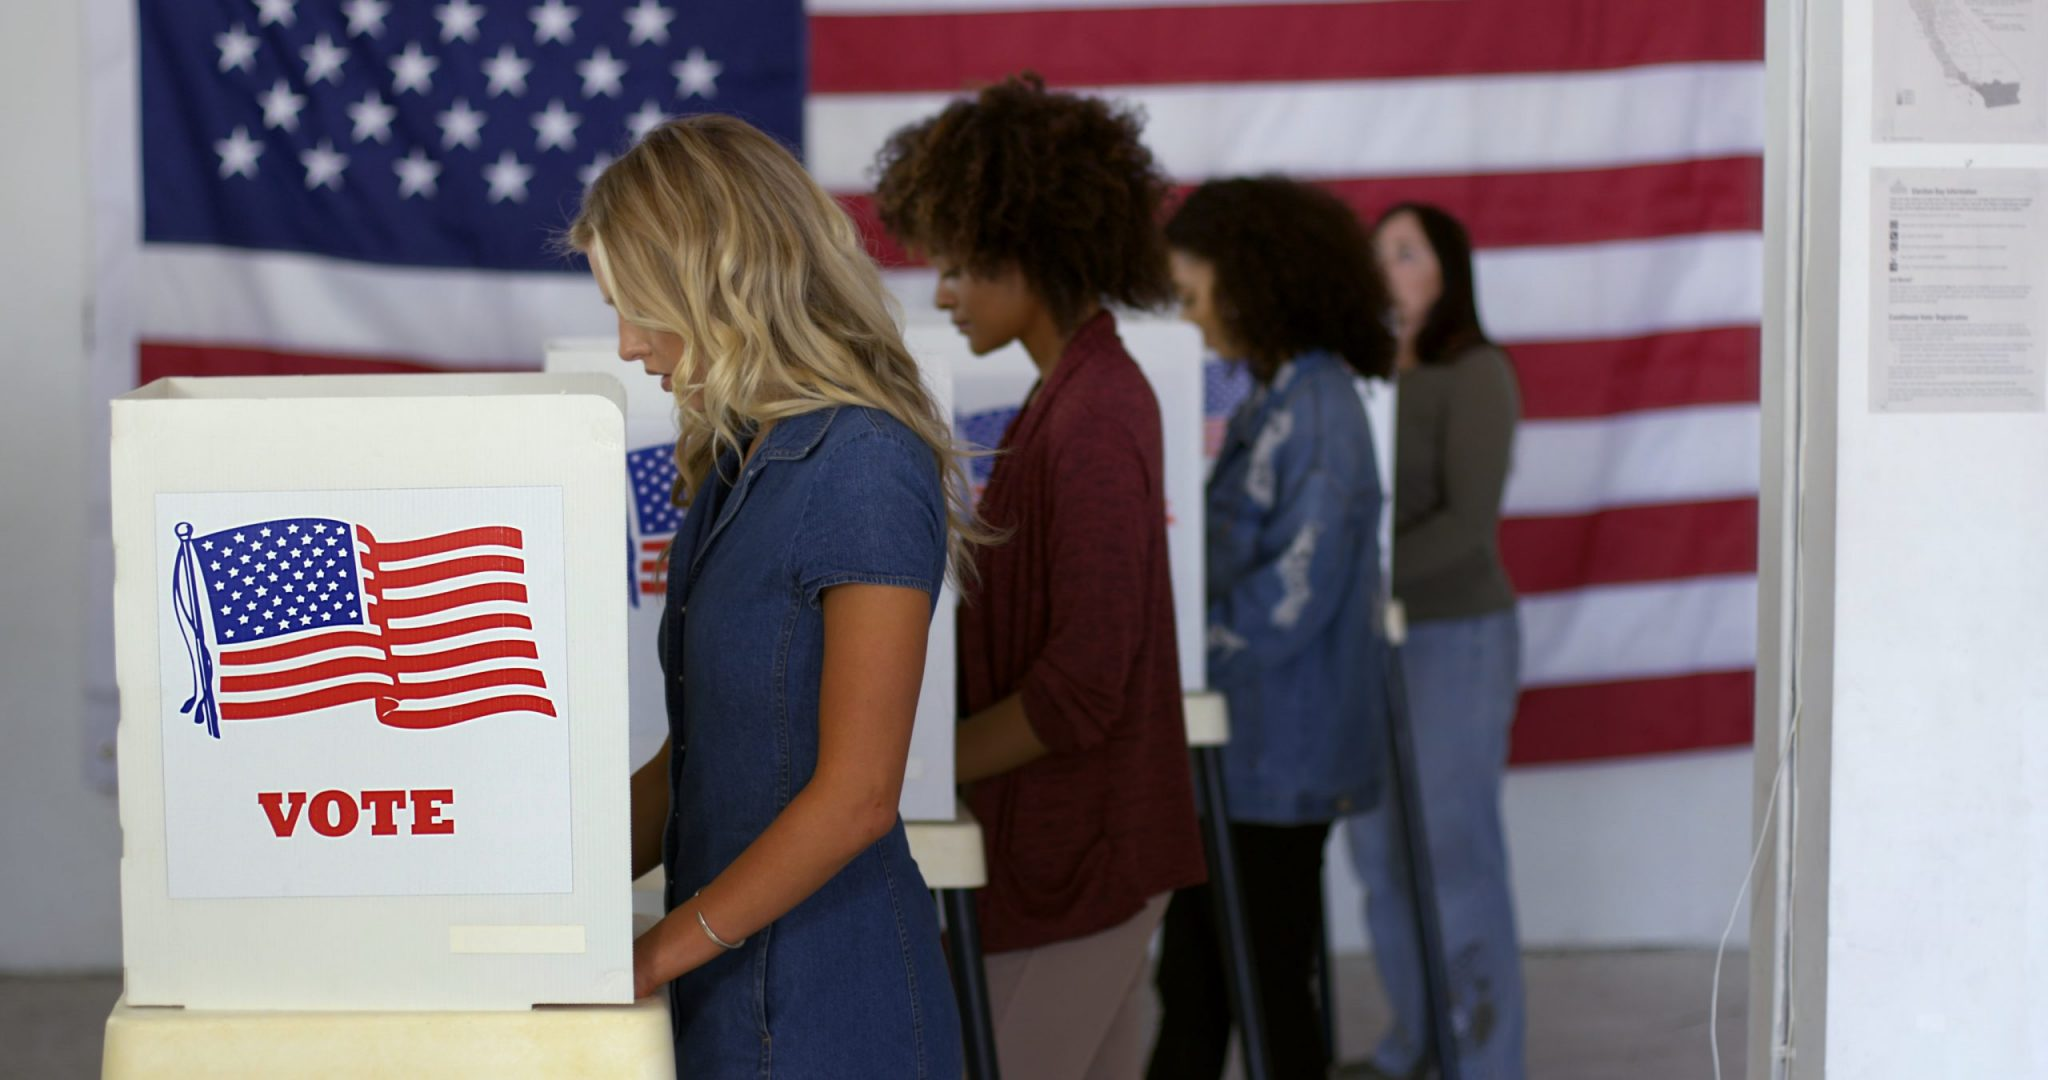 Four women of various demographics filling in ballots and casting votes in booths at polling station, US flag on wall at back.